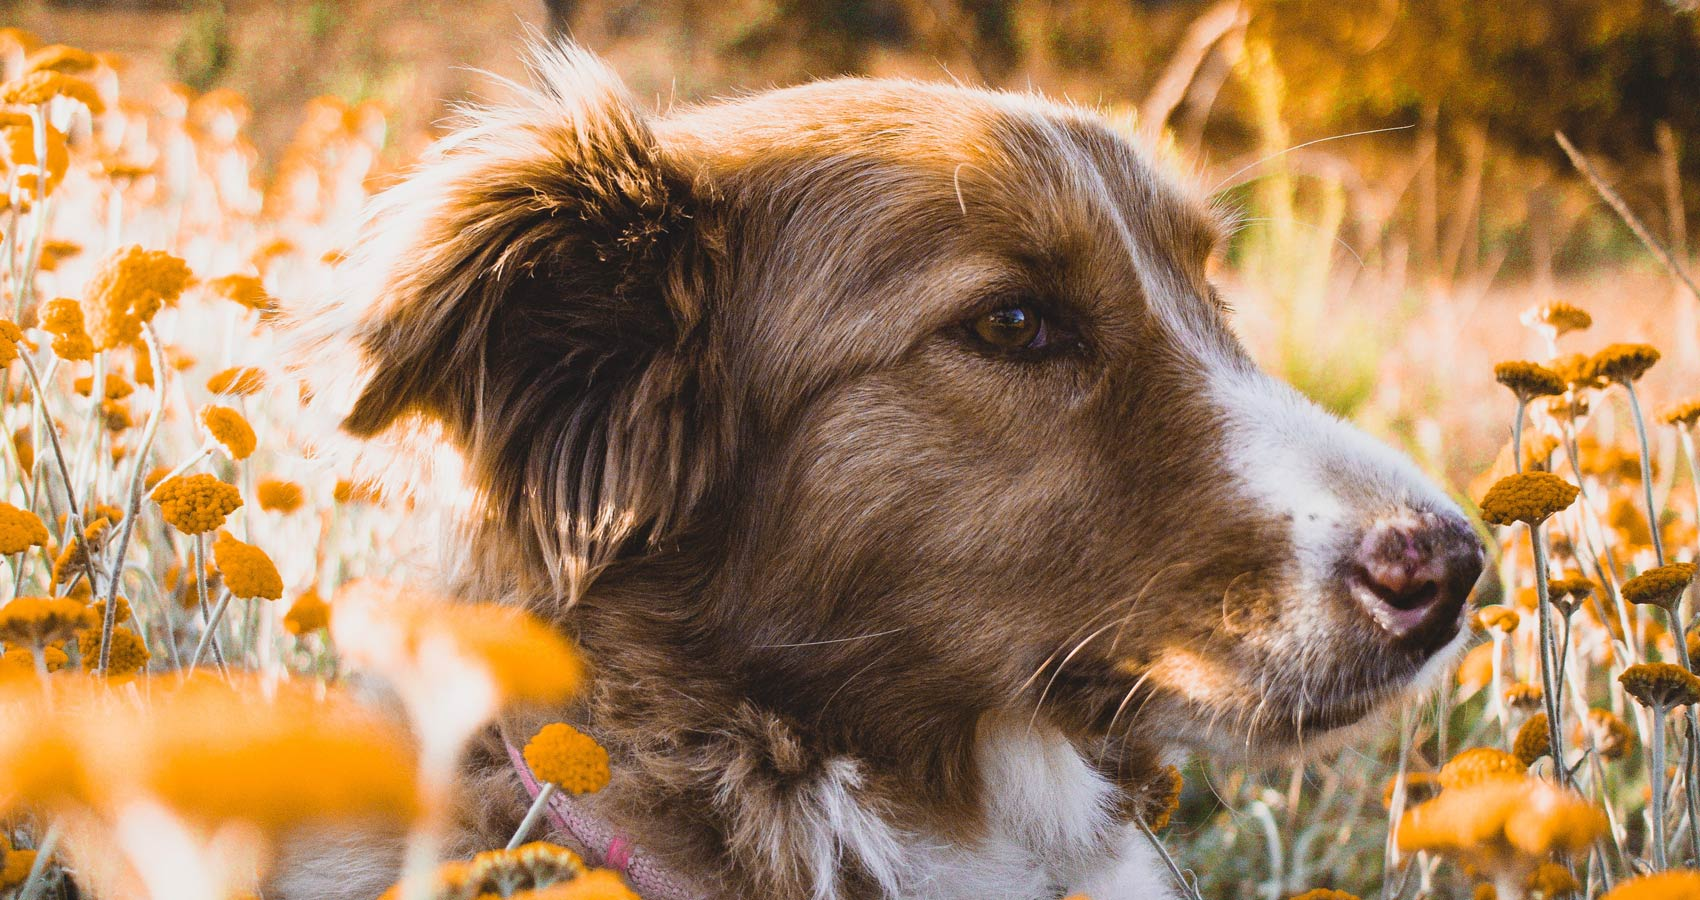 Dogs of March, a poem written by Huntersjames at Spillwords.com